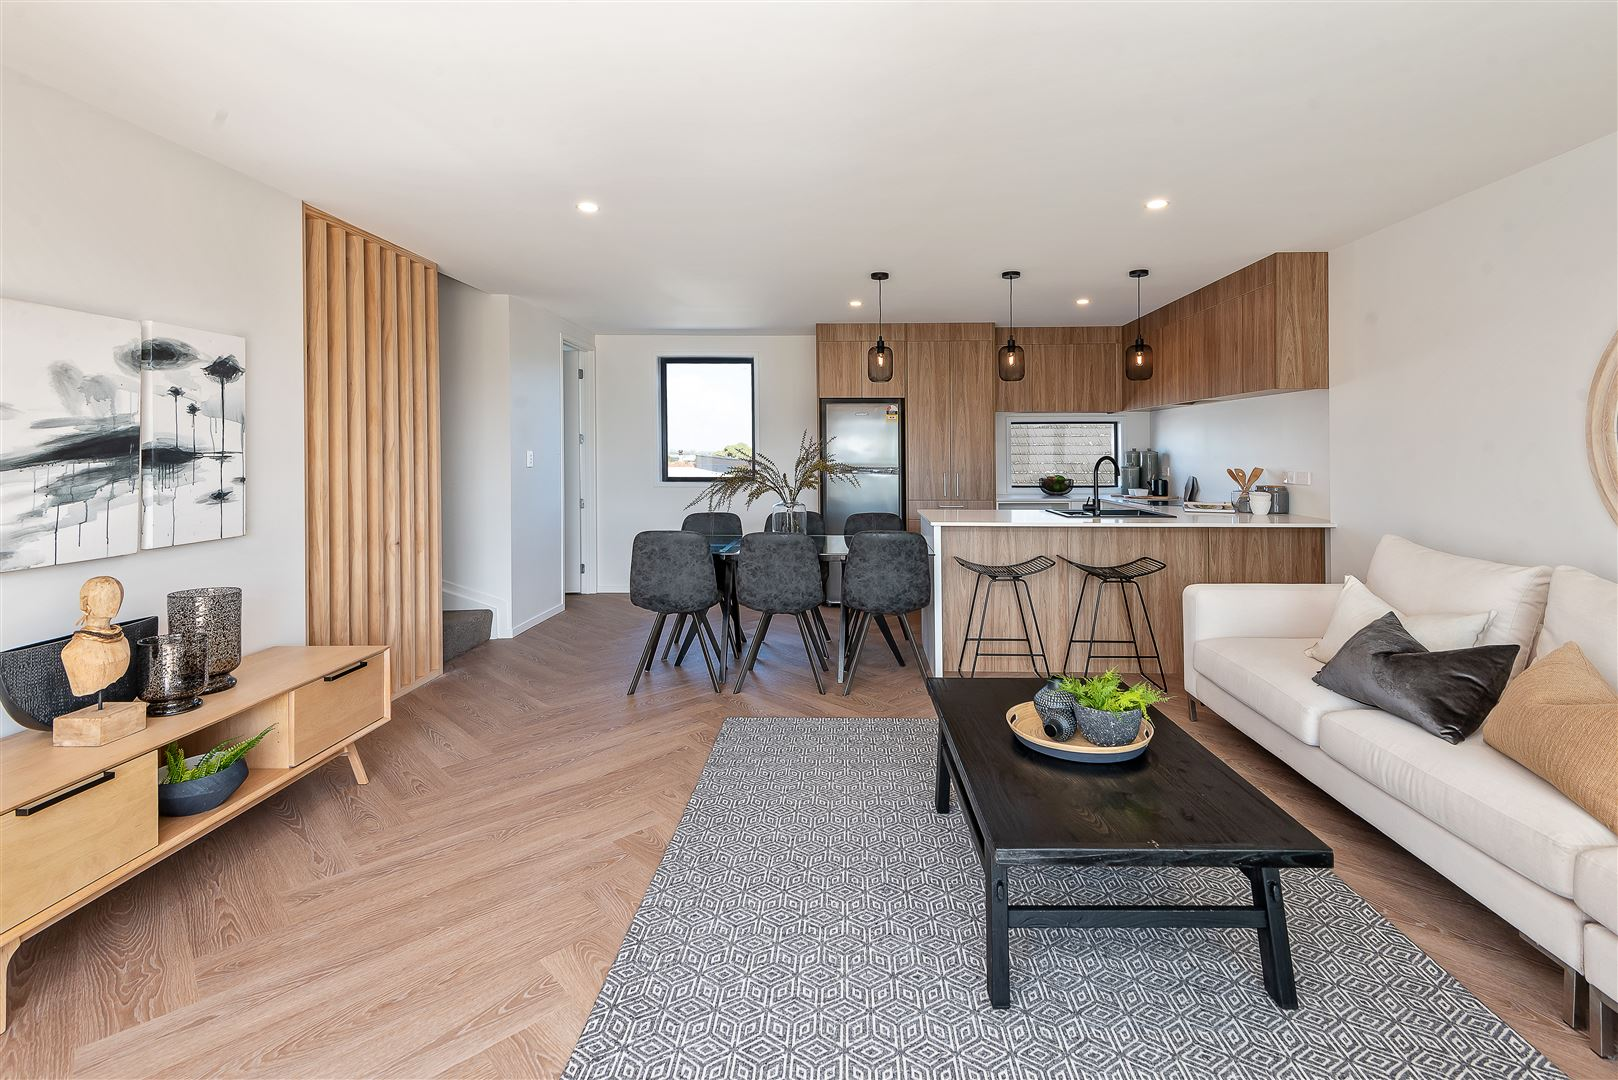 Parquet floors and timber accents are warm and inviting.